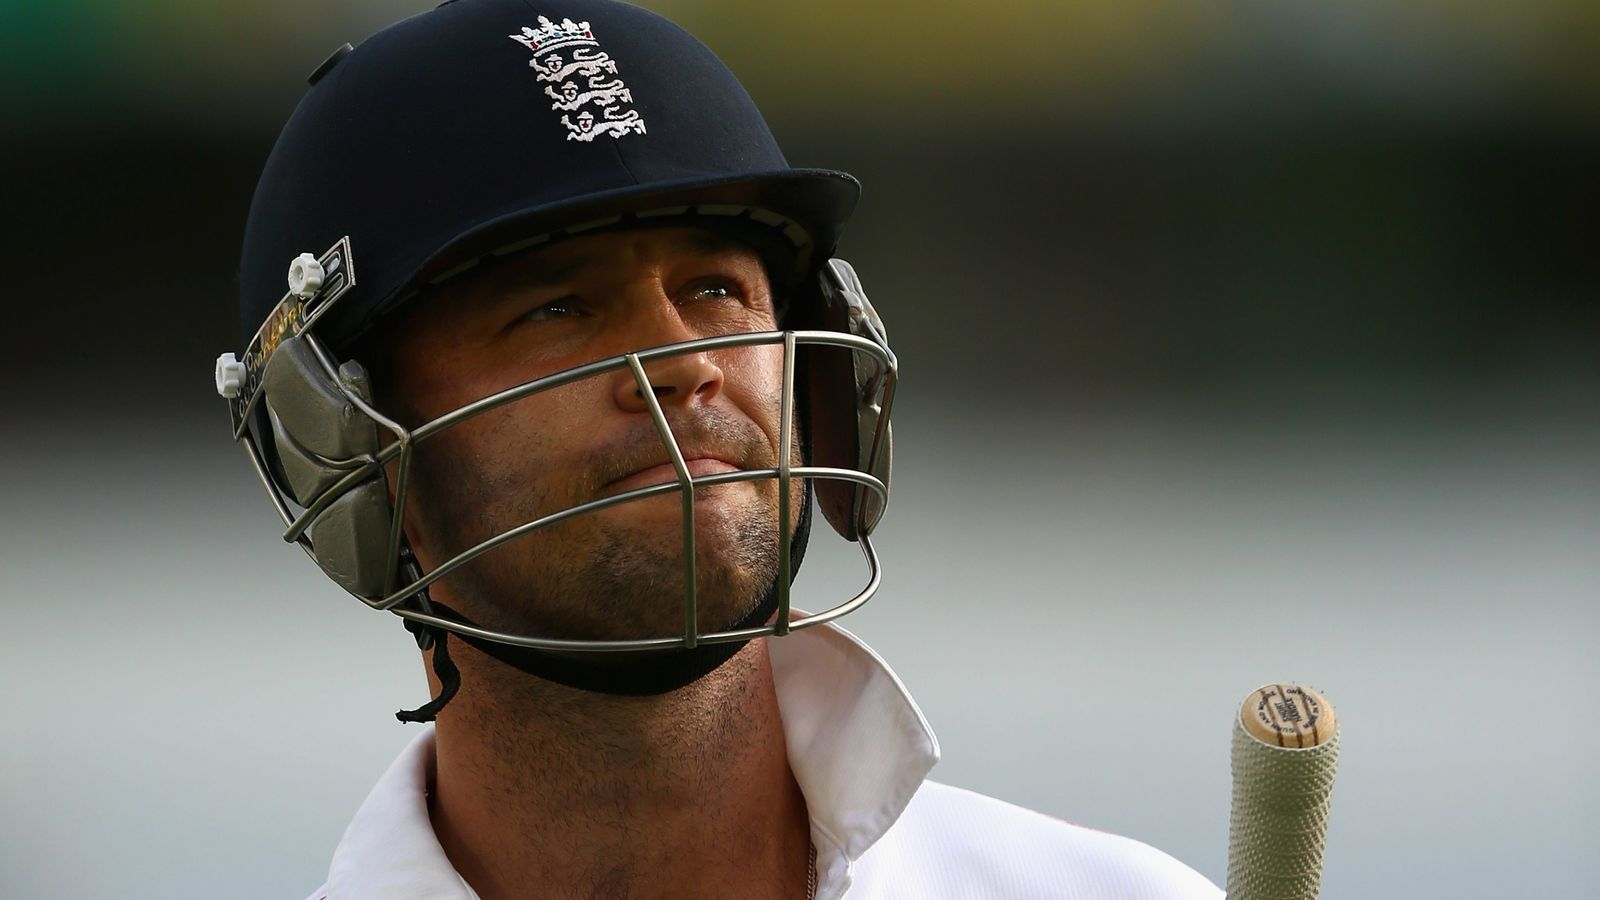 Jonathan Trott says cricket gave him feeling of 'dread' during mental-health battles - Sky Sports